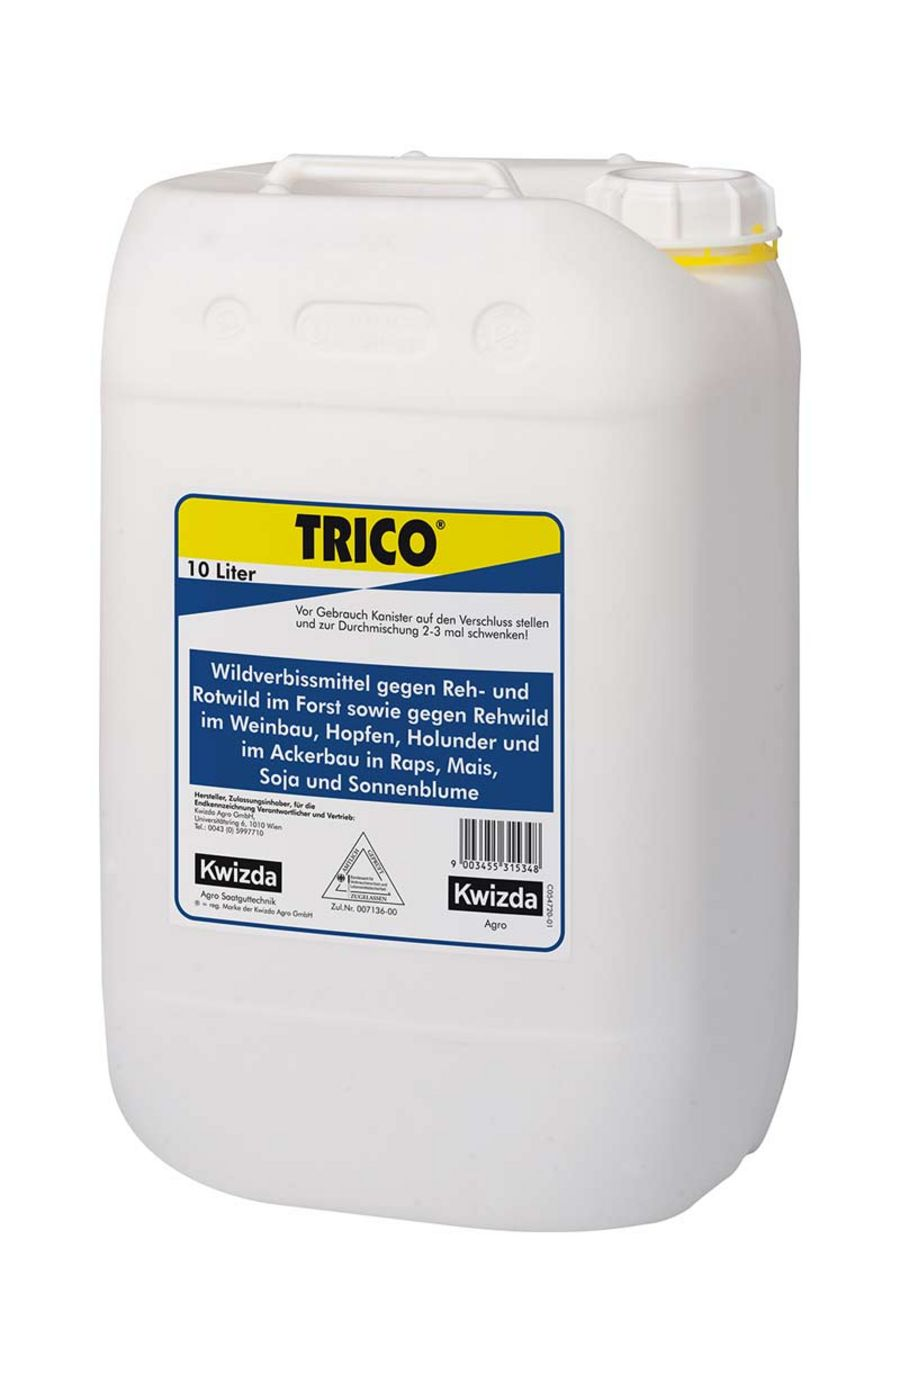 Helps trees to grow: Trico® prevents damage caused by game animals